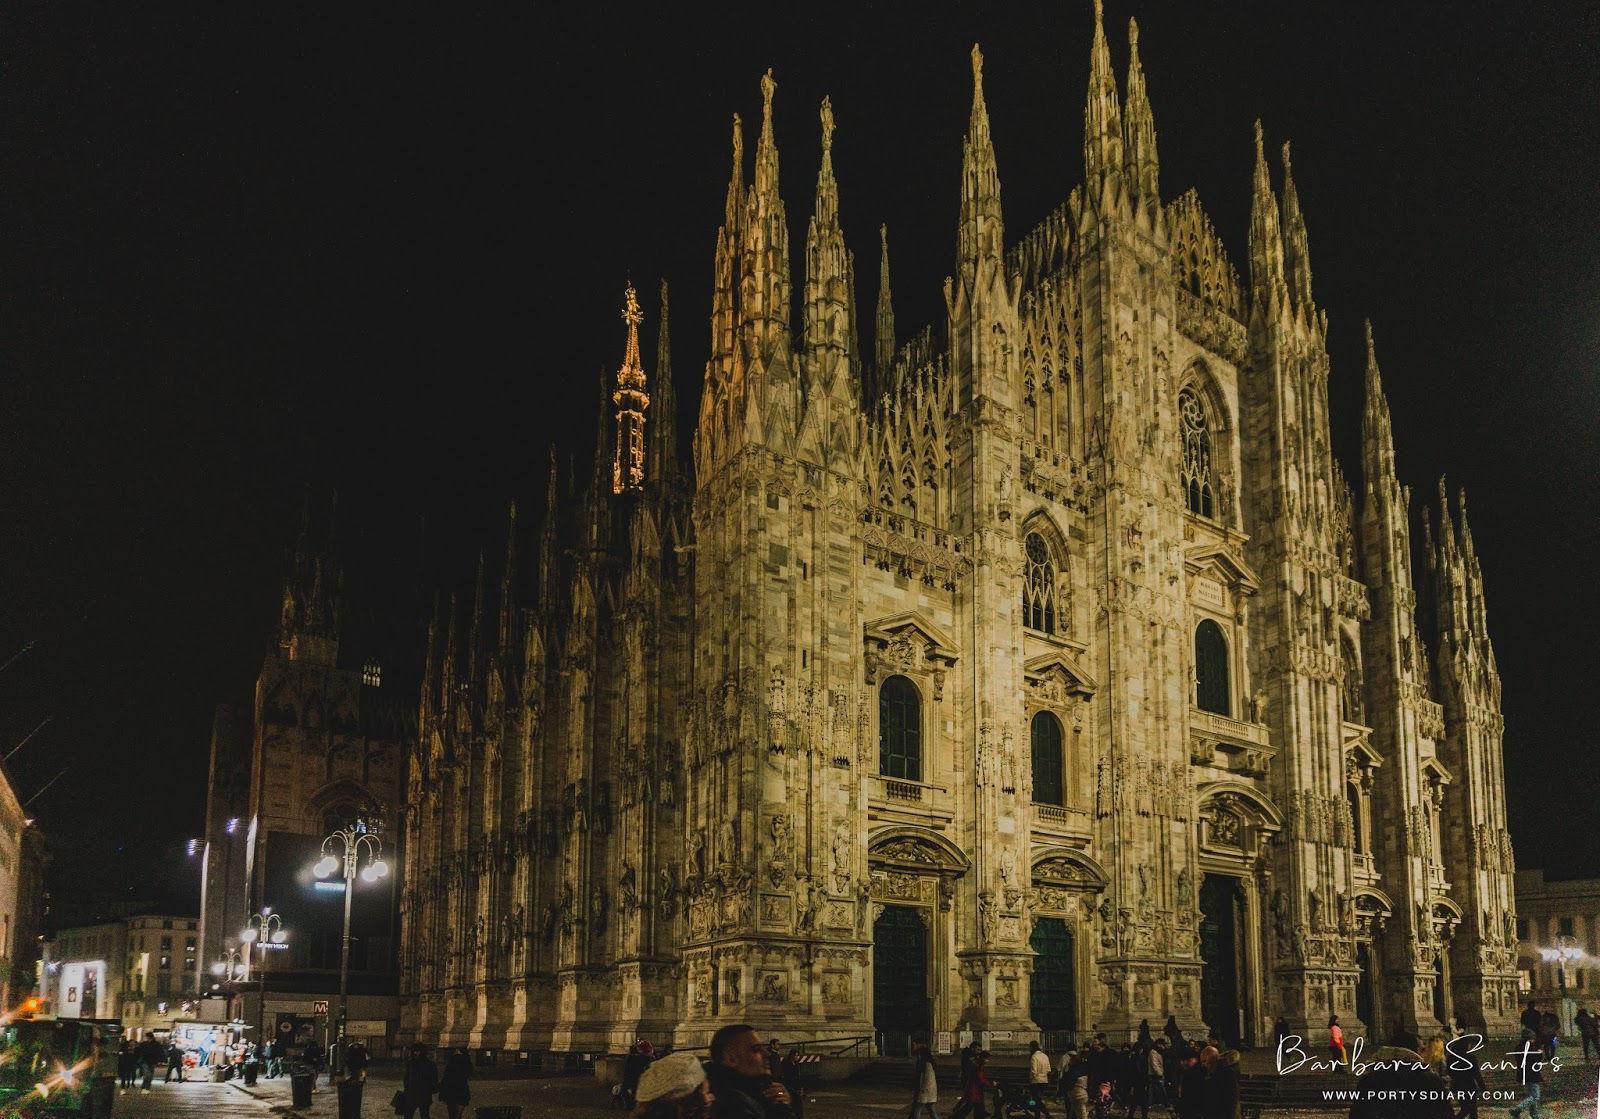 Duomo, Milan - 2018 - Barbara Santos for www.portysdiary.com - Shot with Sony a6000